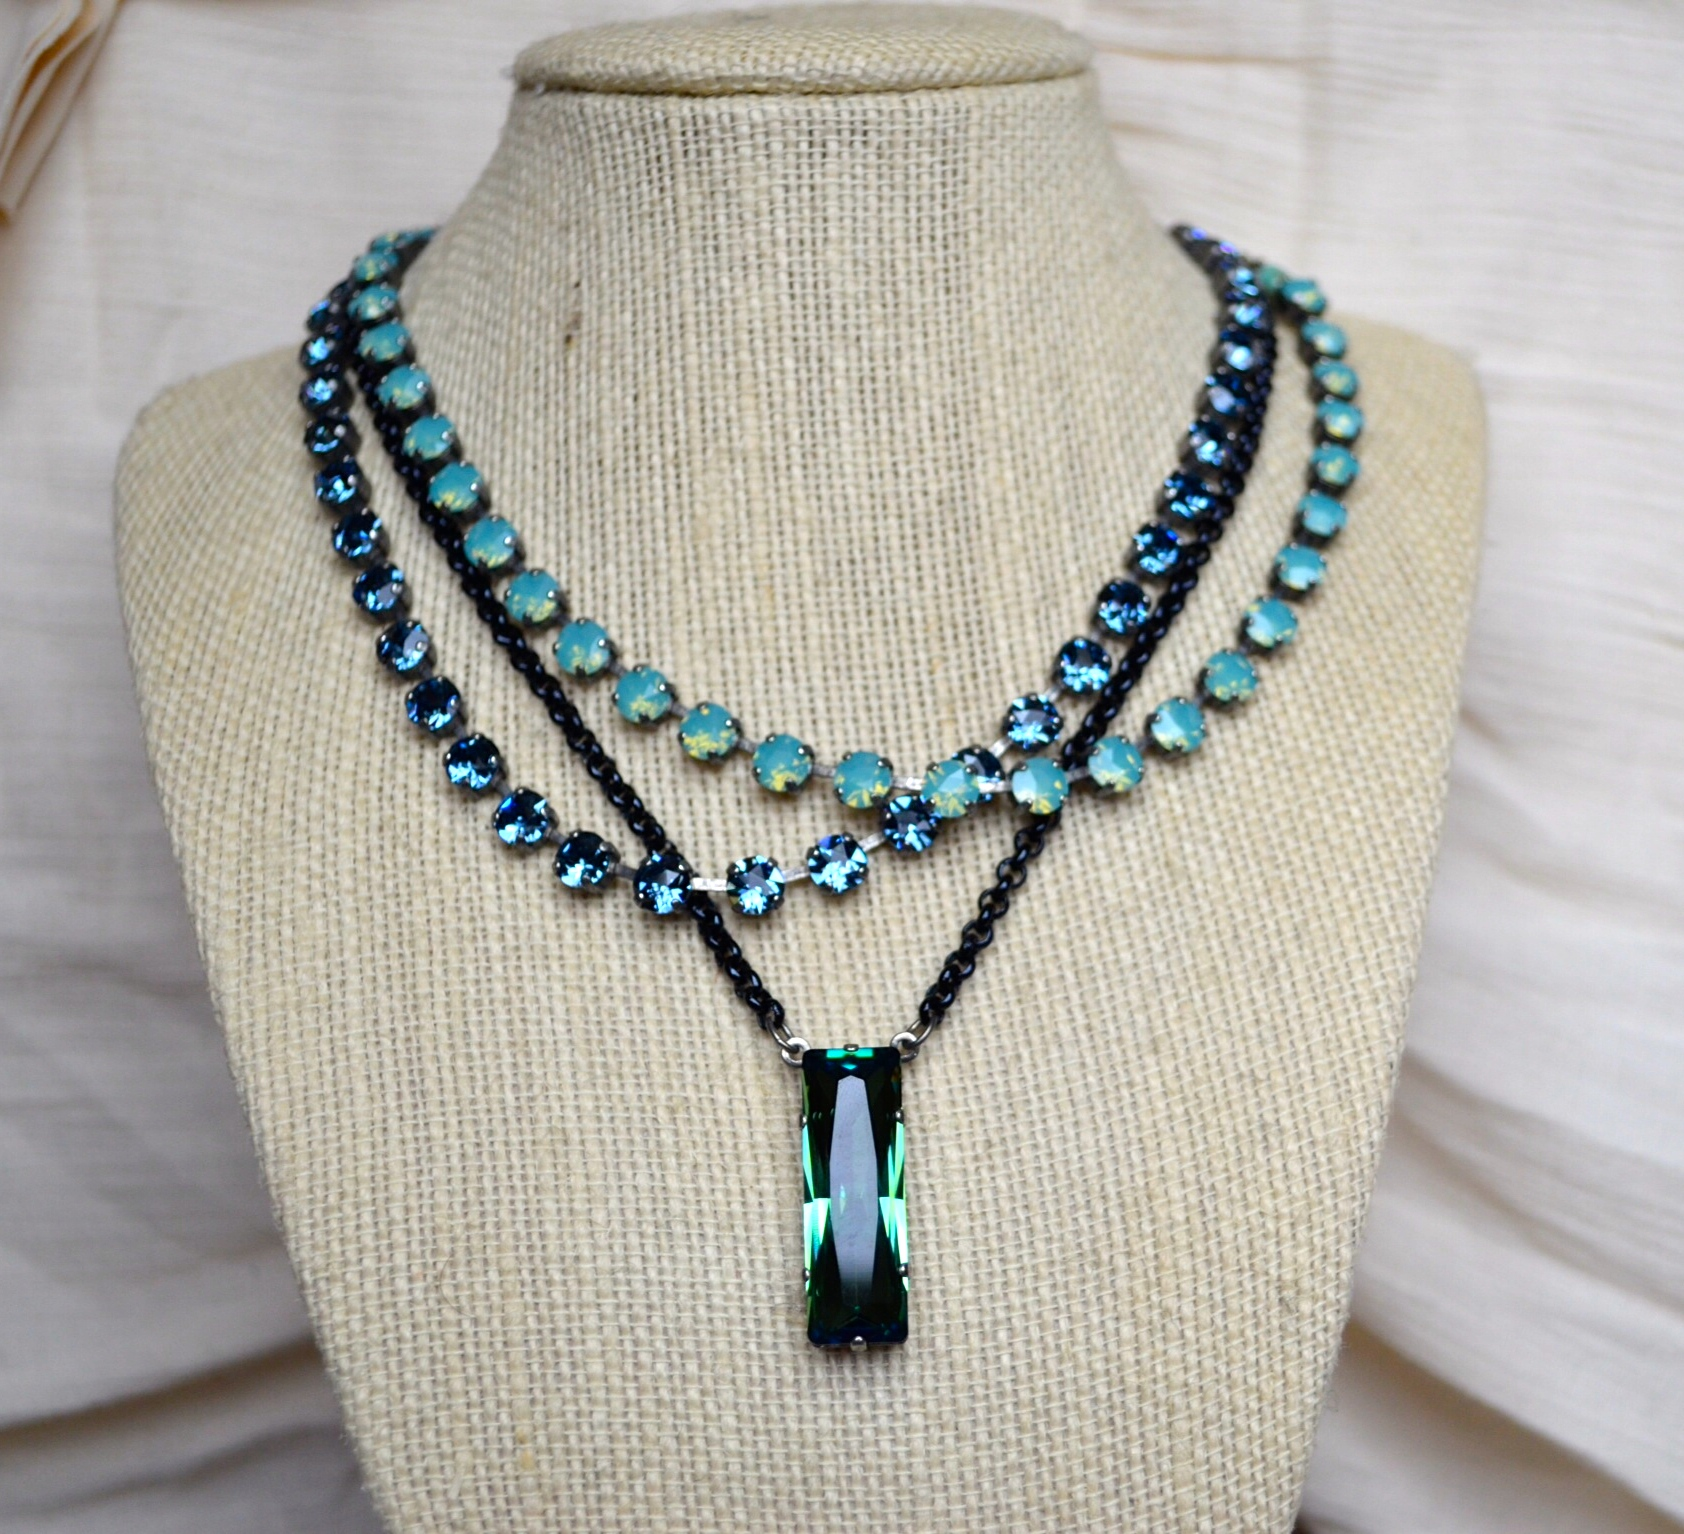 Sabika look necklace -  My Favorite Pieces This Spring Summer Collection Would Have To Be The Stretchy Bracelets Yes I Know They Are Not Usually The First Pieces You Look At